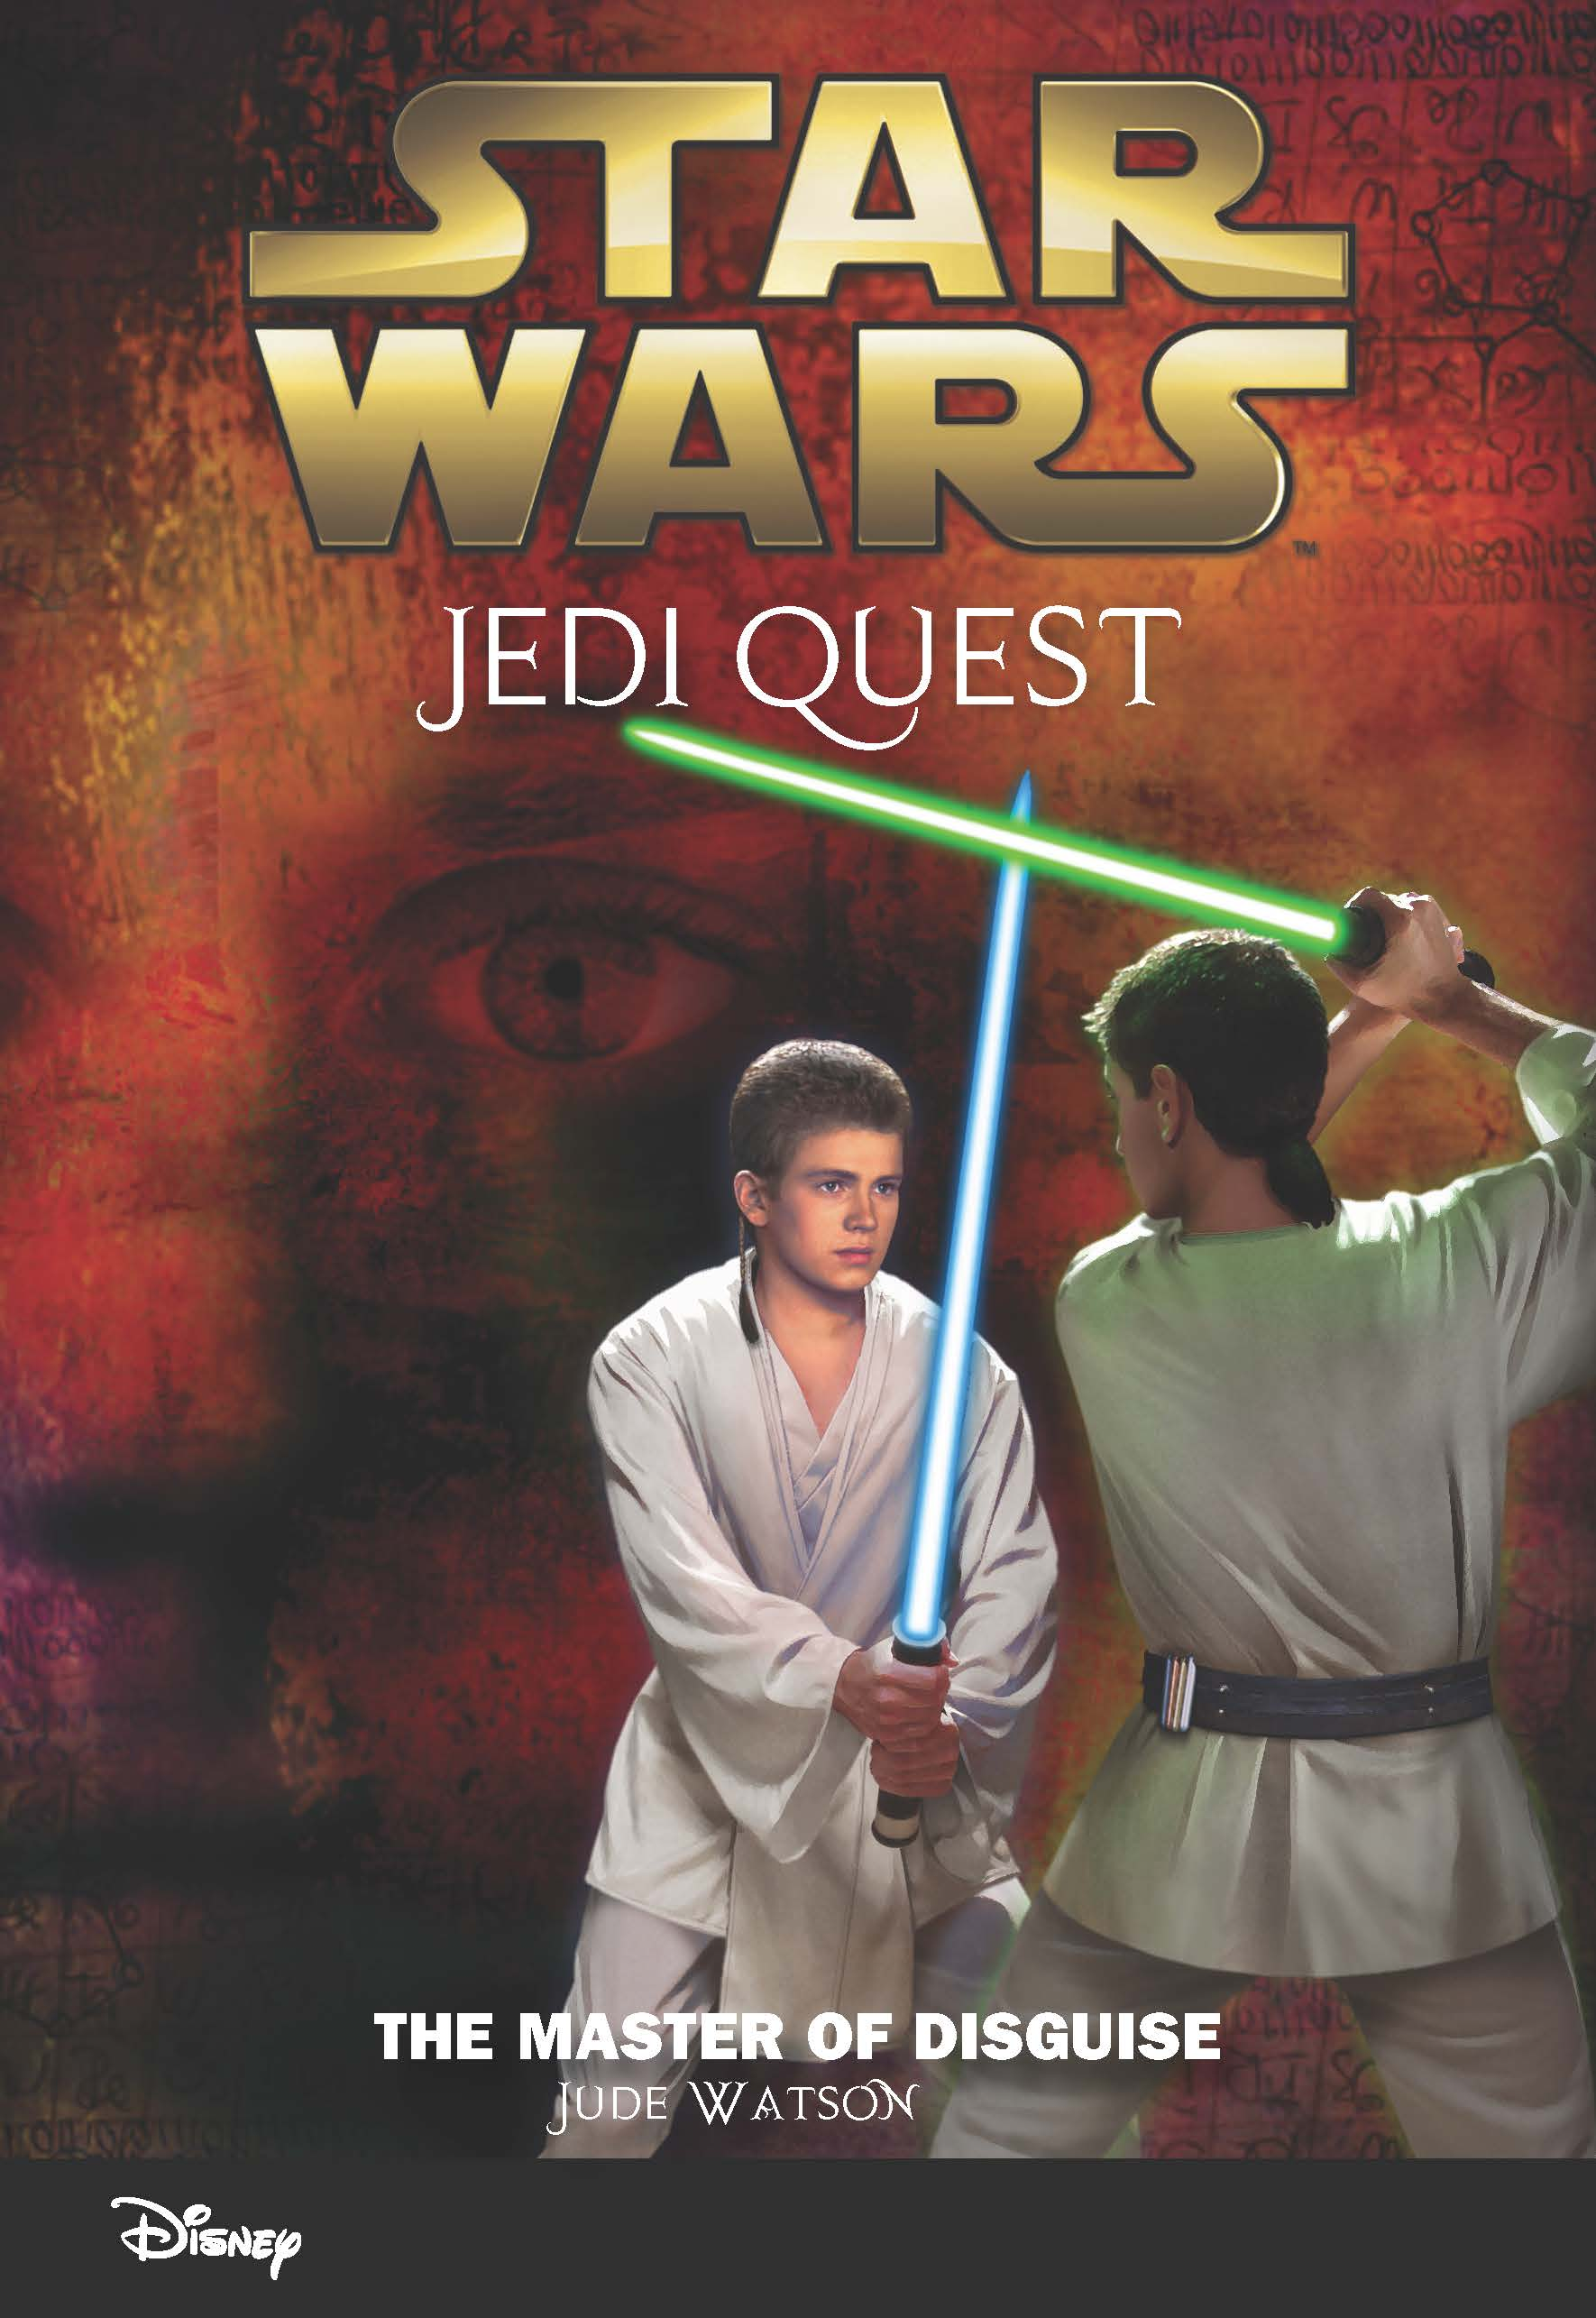 Star Wars Jedi Quest: The Master Of Disguise  Disney Books  Disney  Publishing Worldwide